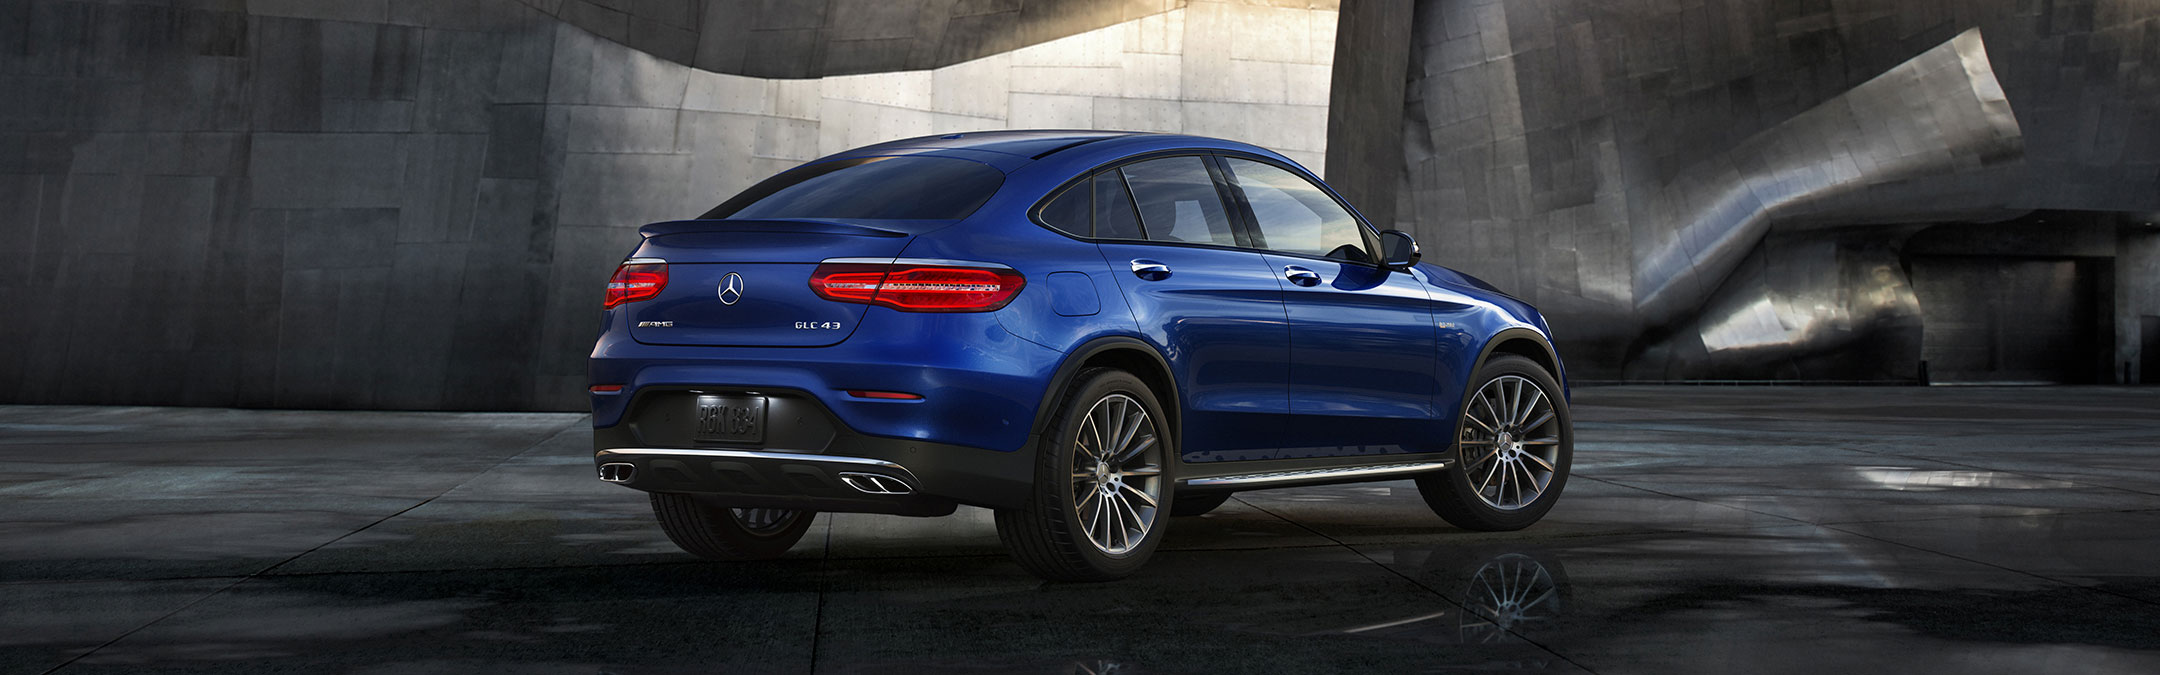 2018 Mercedes-AMG GLC 4MATIC Coupe